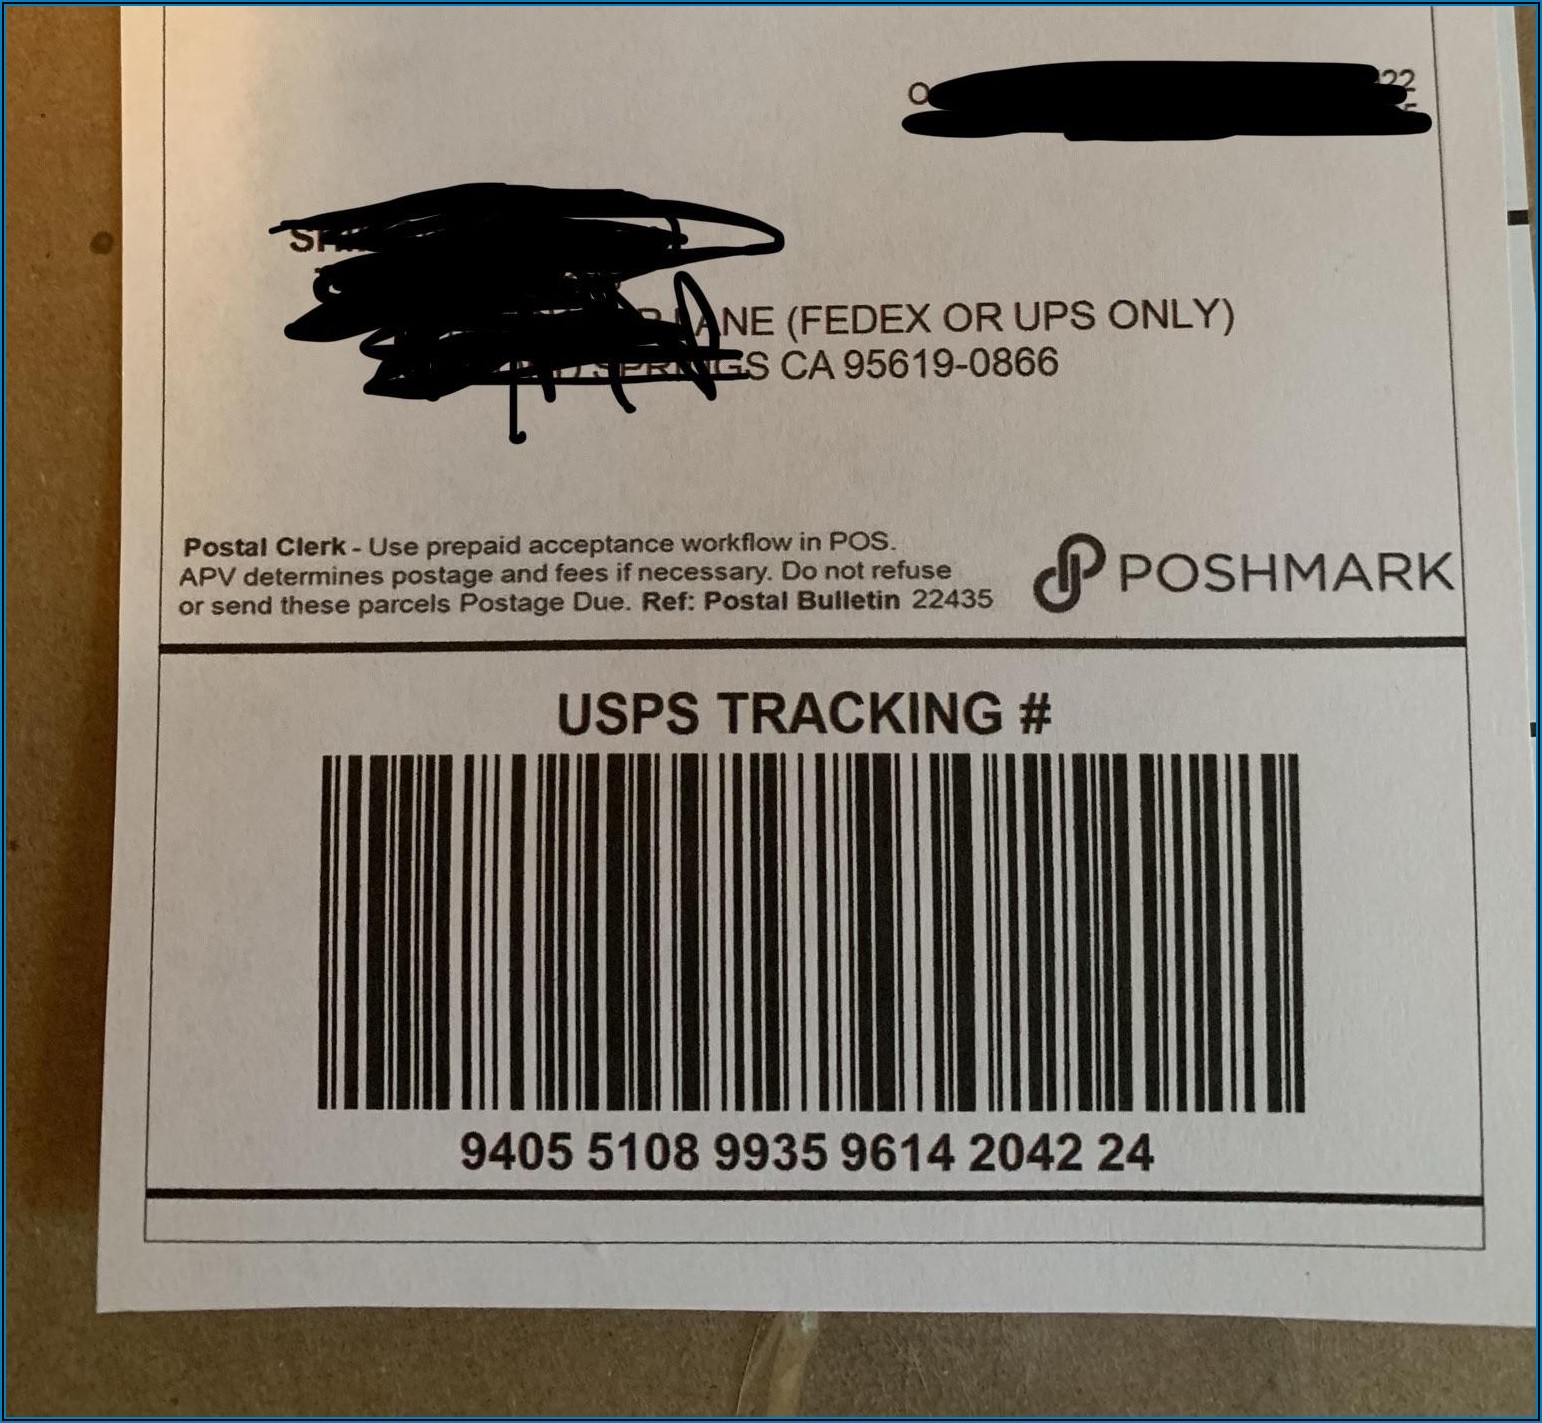 How To Get A Self Addressed Prepaid Envelope From Fedex